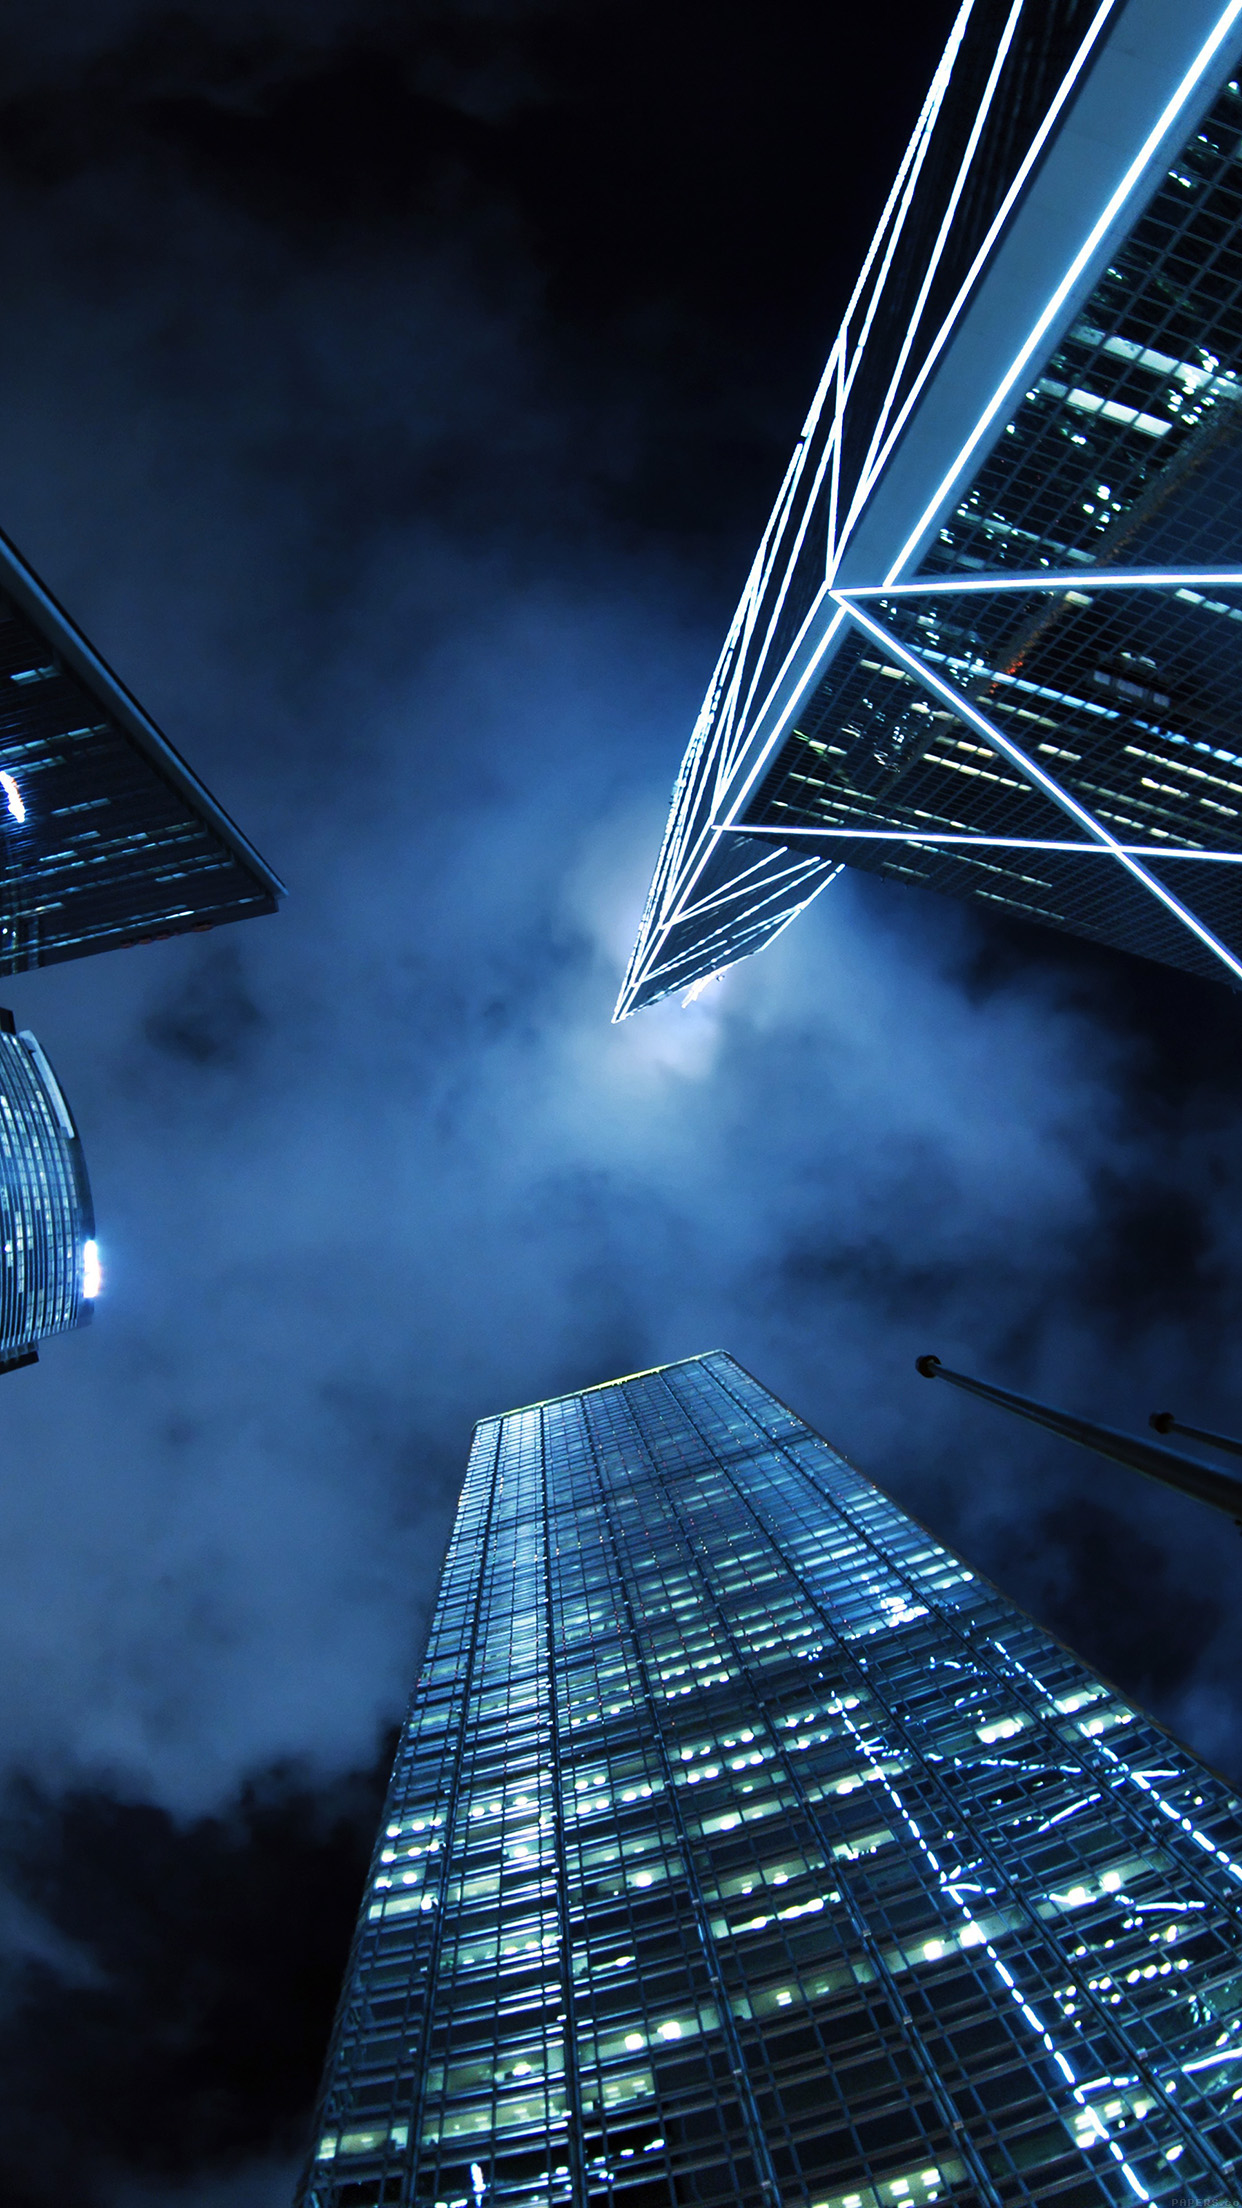 Buildings Blue Night City Sky Android wallpaper